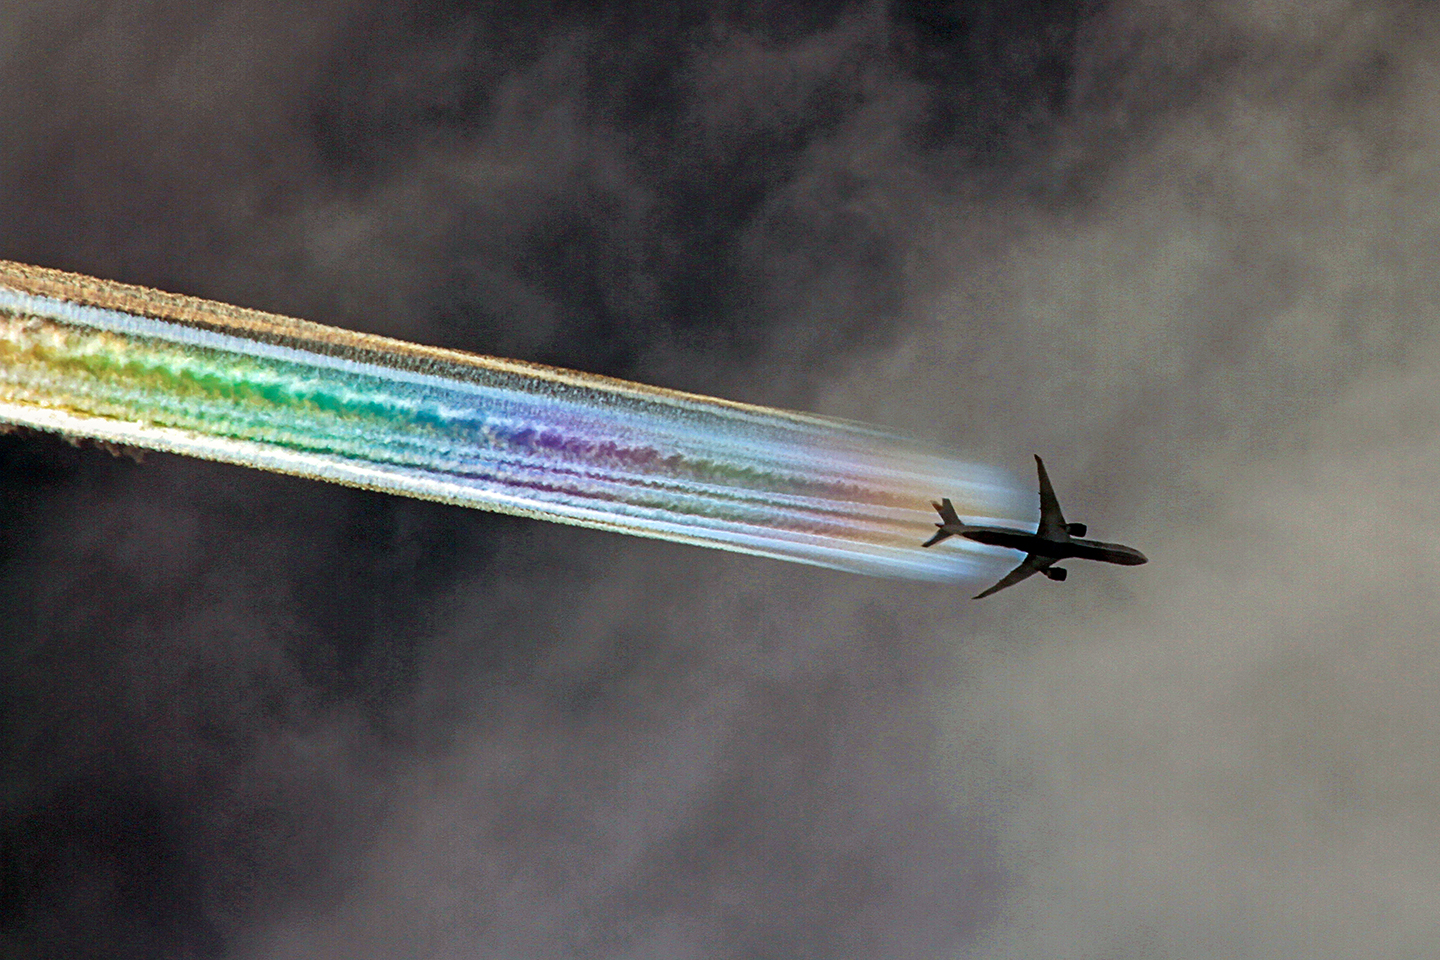 07.2_Ron_Smith_Boeing-777-contrail-Jul-a_1440w.1576078187.jpg